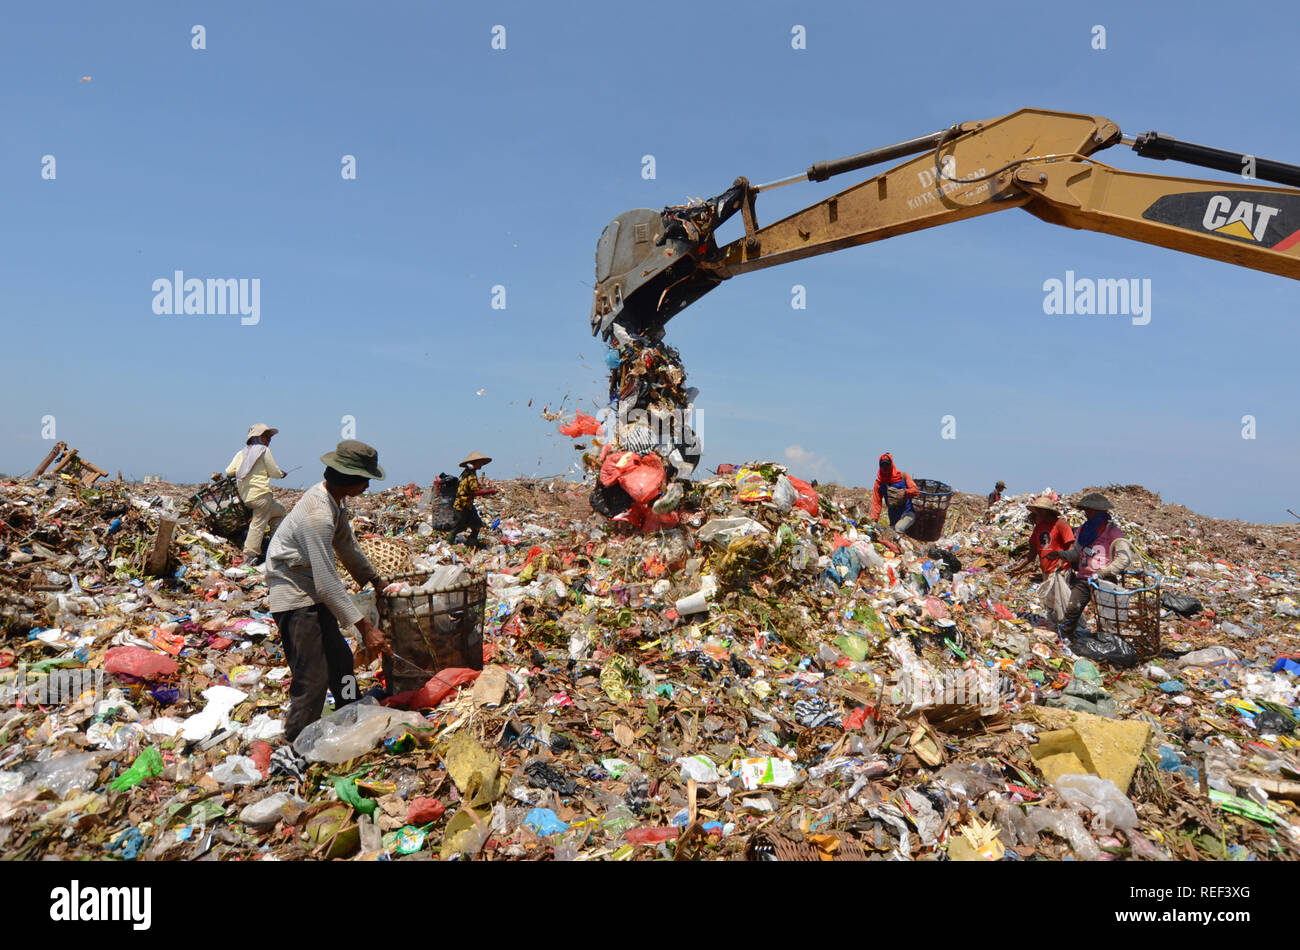 Workers collect rubbish at the landfill - Stock Image